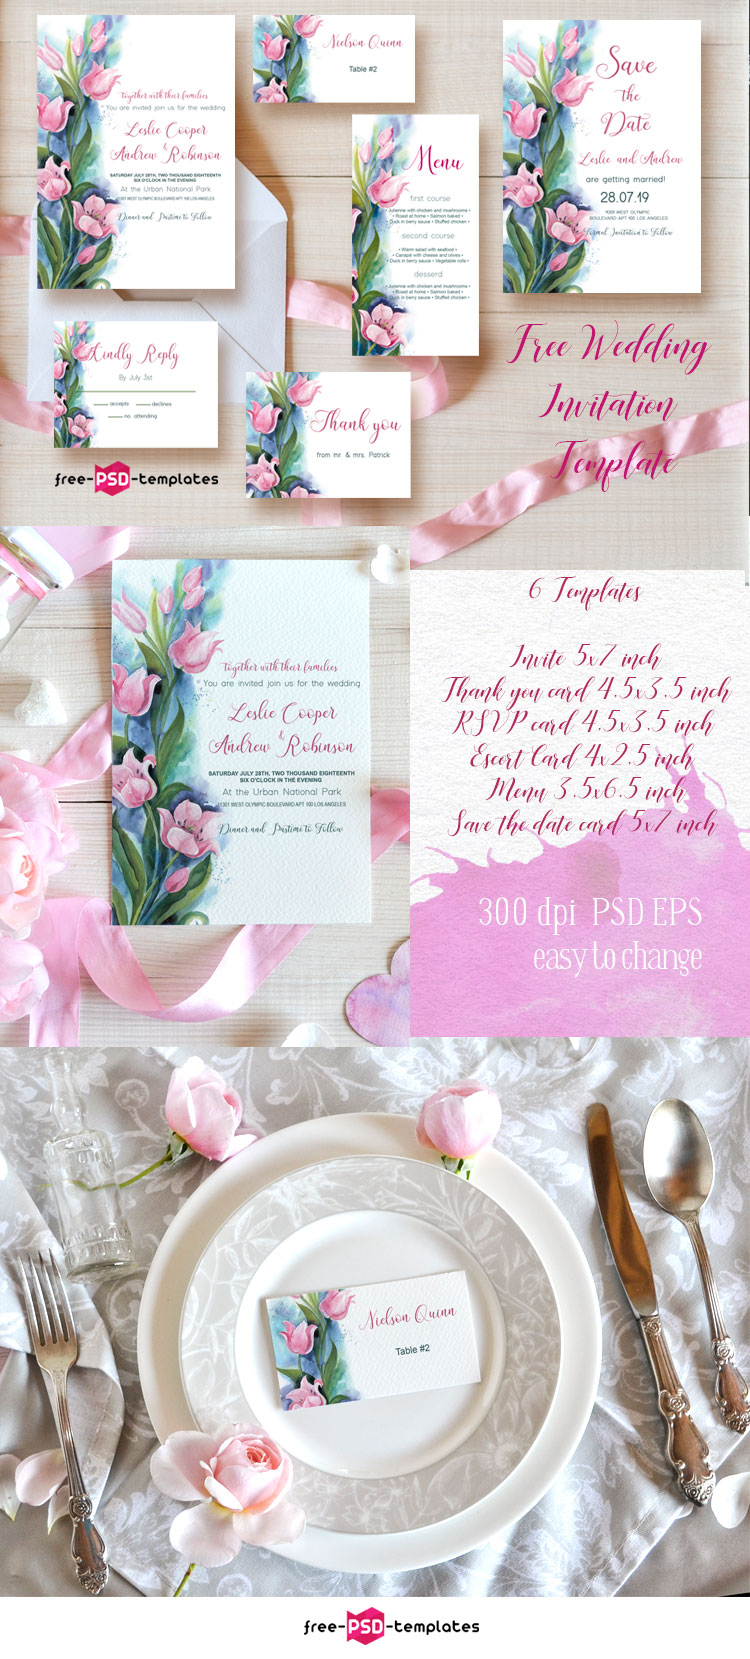 Free Wedding Invitation Template Tulips | Free PSD Templates